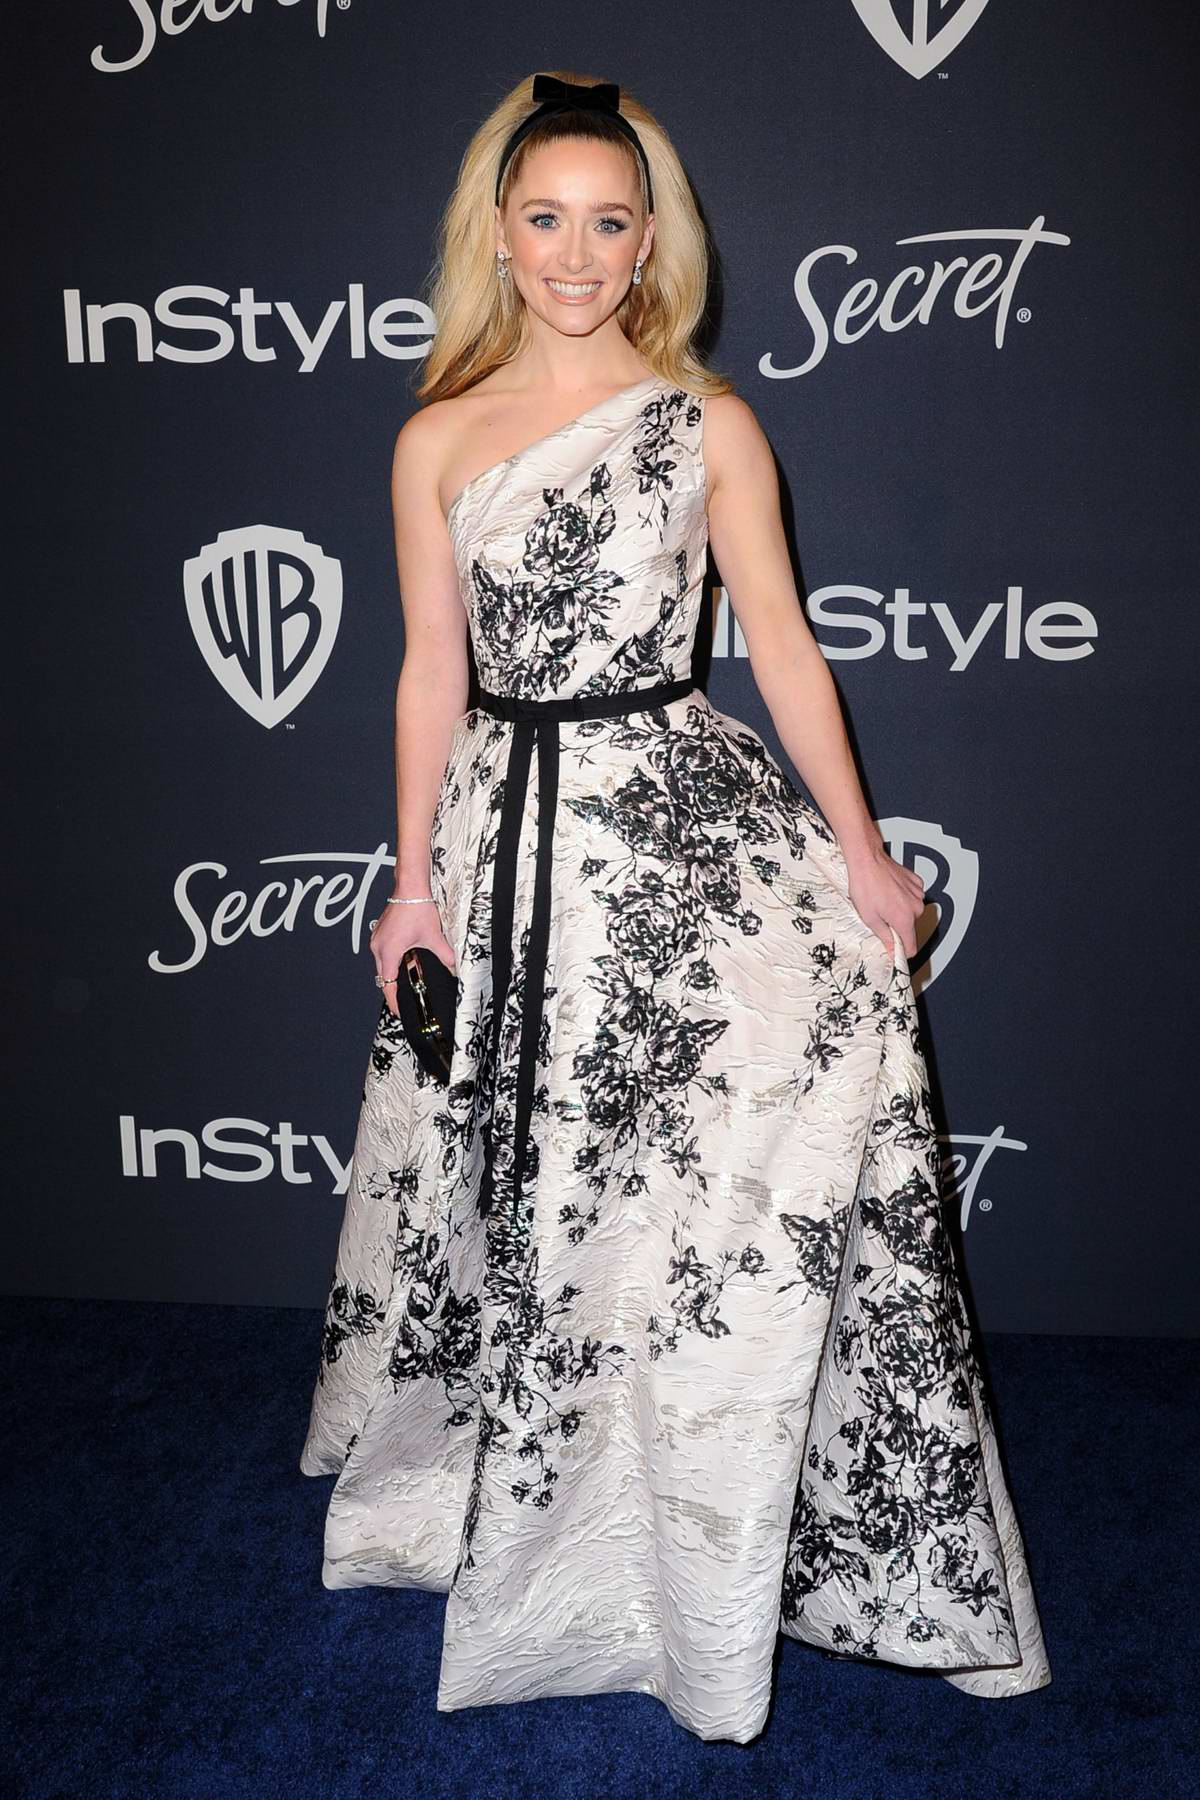 Greer Grammer attends the 21st annual Warner Bros and InStyle Golden Globe After-Party in Beverly Hills, California